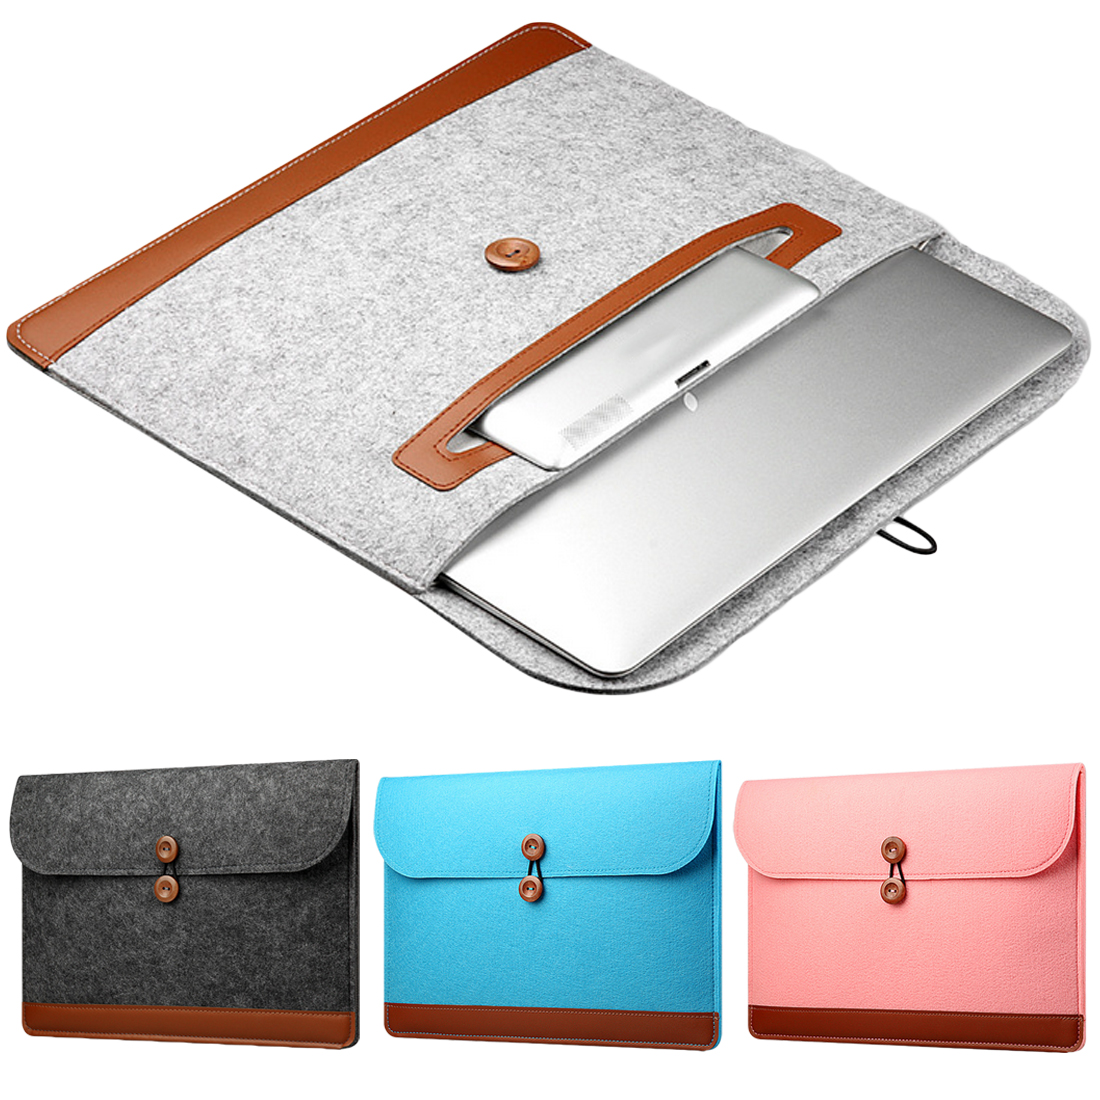 Image 4 - Centechia New Fashion Soft Sleeve Bag Case For Apple Macbook Air Pro Retina 11 12 13 15 Laptop Anti scratch Felt Cover-in Laptop Bags & Cases from Computer & Office